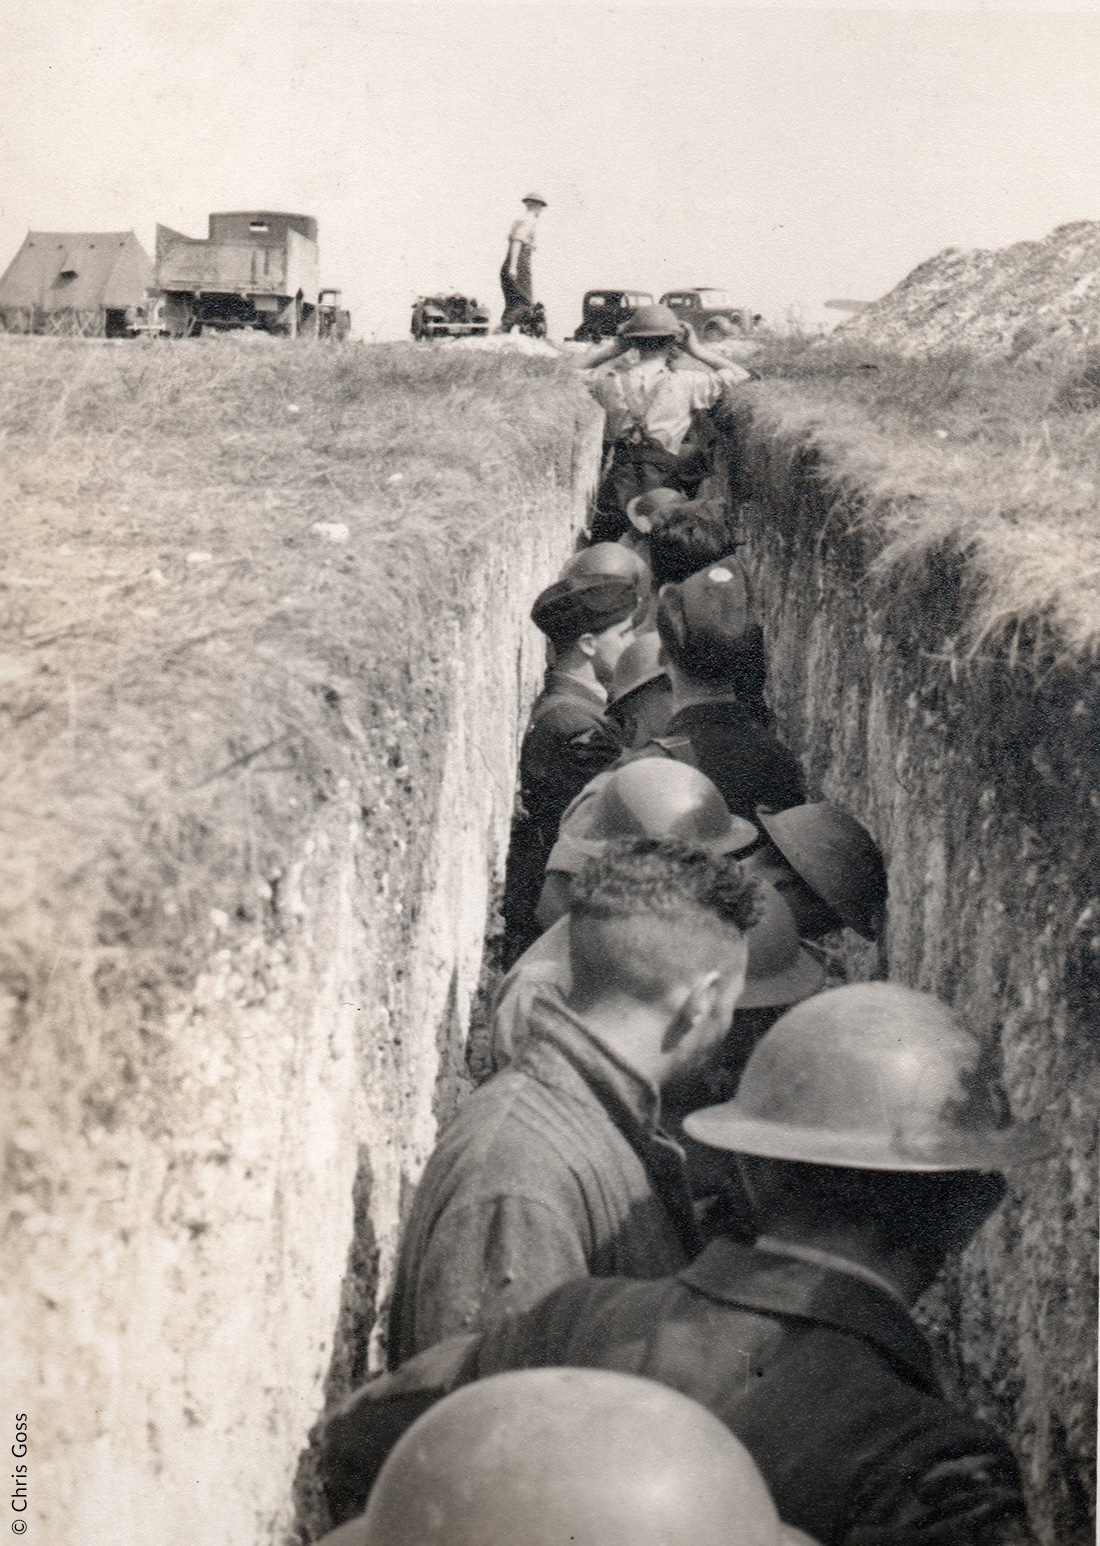 Groundcrew taking cover, RAF Middle wallop, August 1940